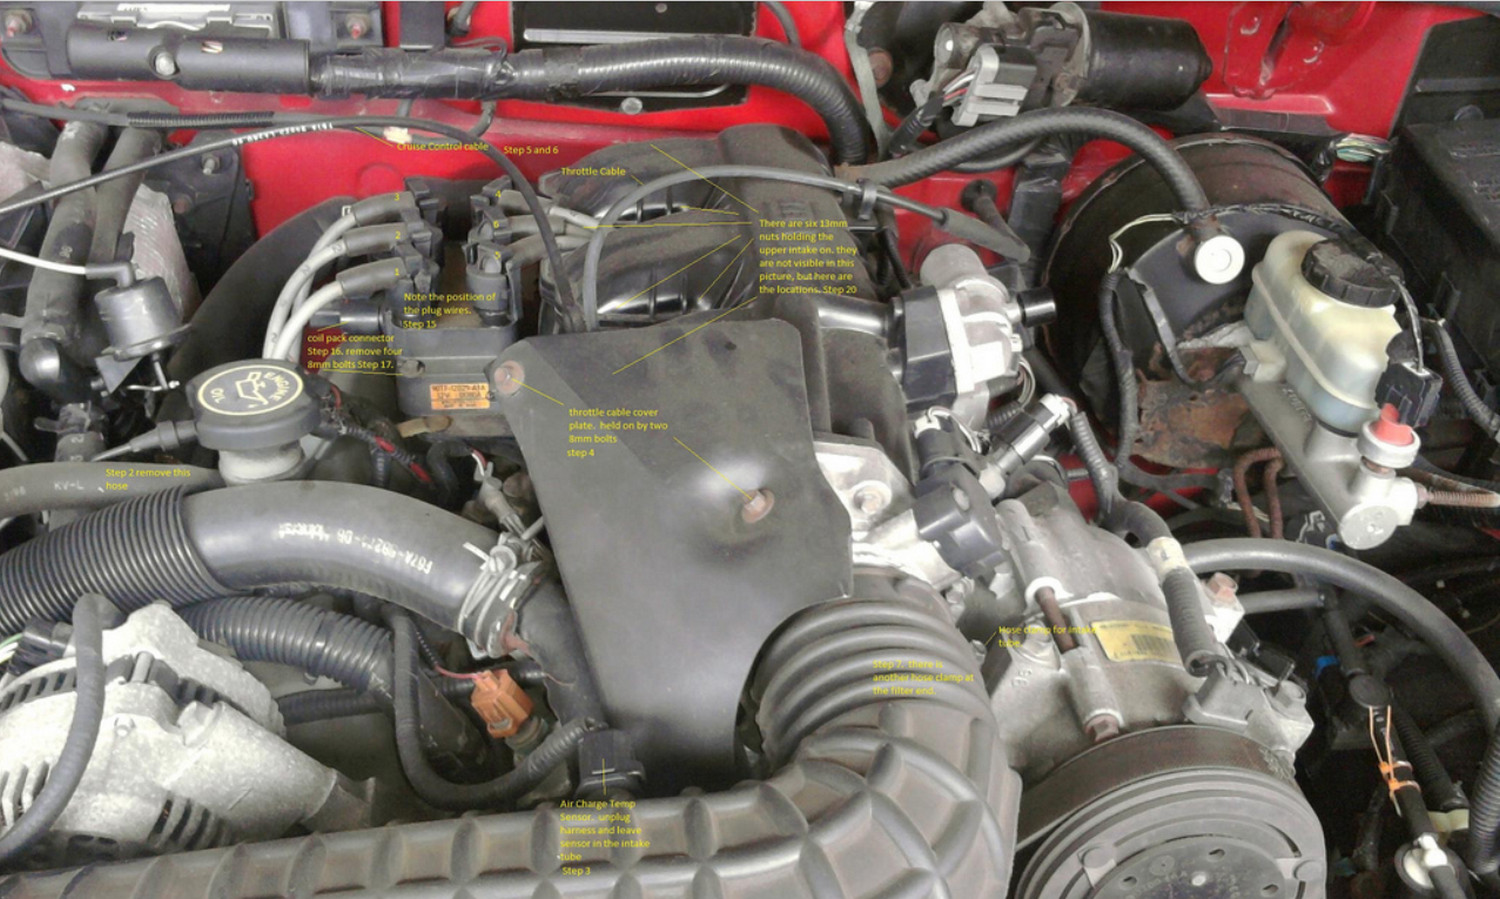 1996 Ford Ranger Engine Diagram Off Road Light Wiring Diagram With Relay Delco Electronics Yenpancane Jeanjaures37 Fr